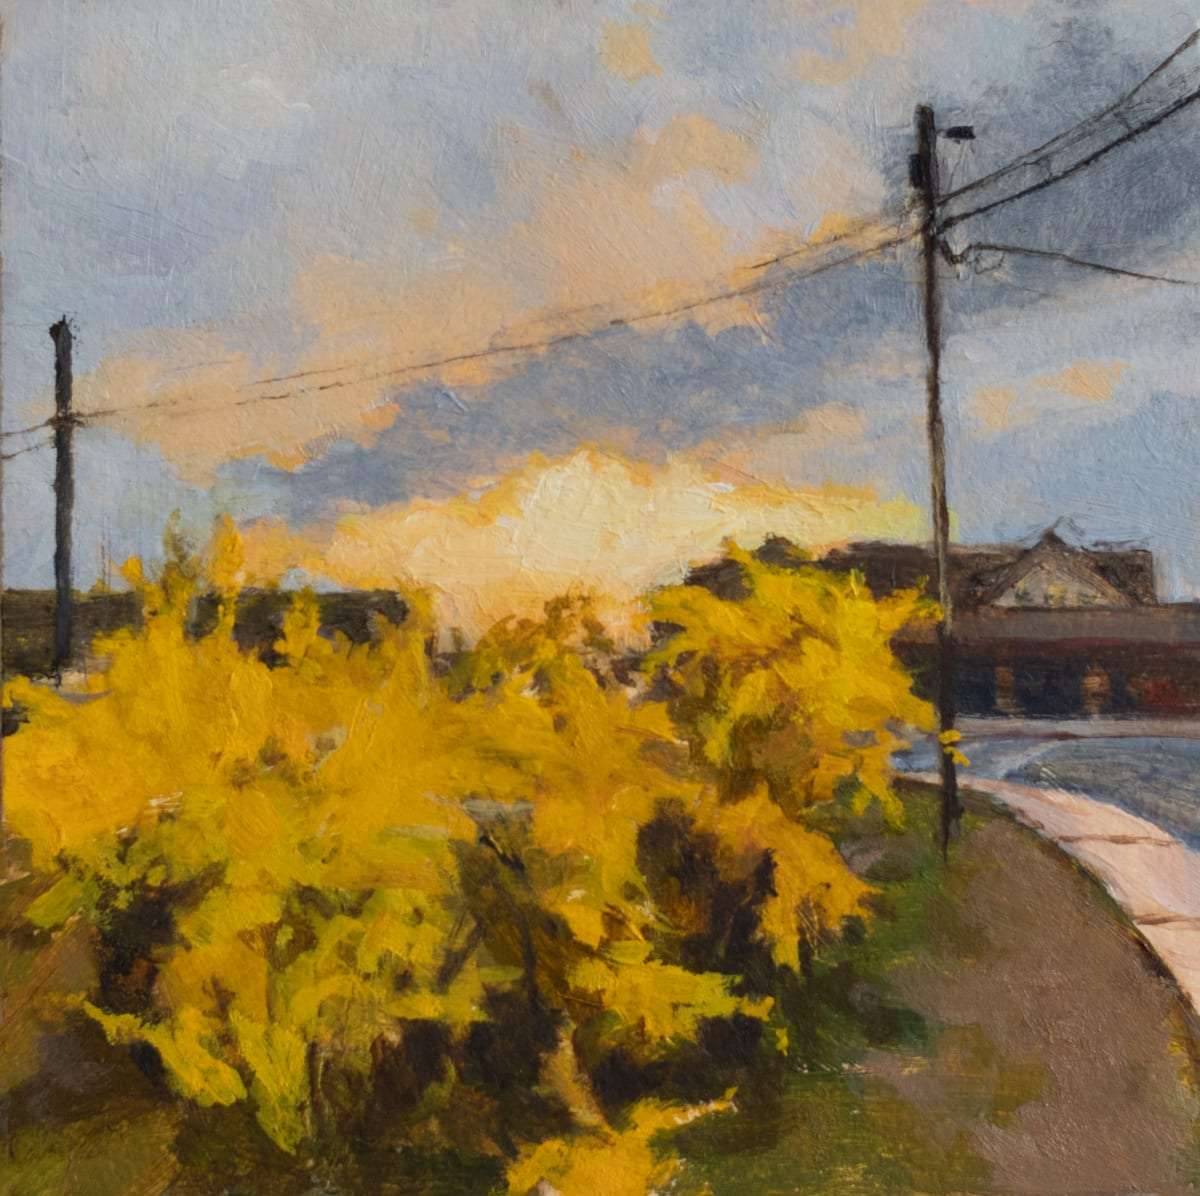 Sally Maca, Forsythia at Sunset, 2019